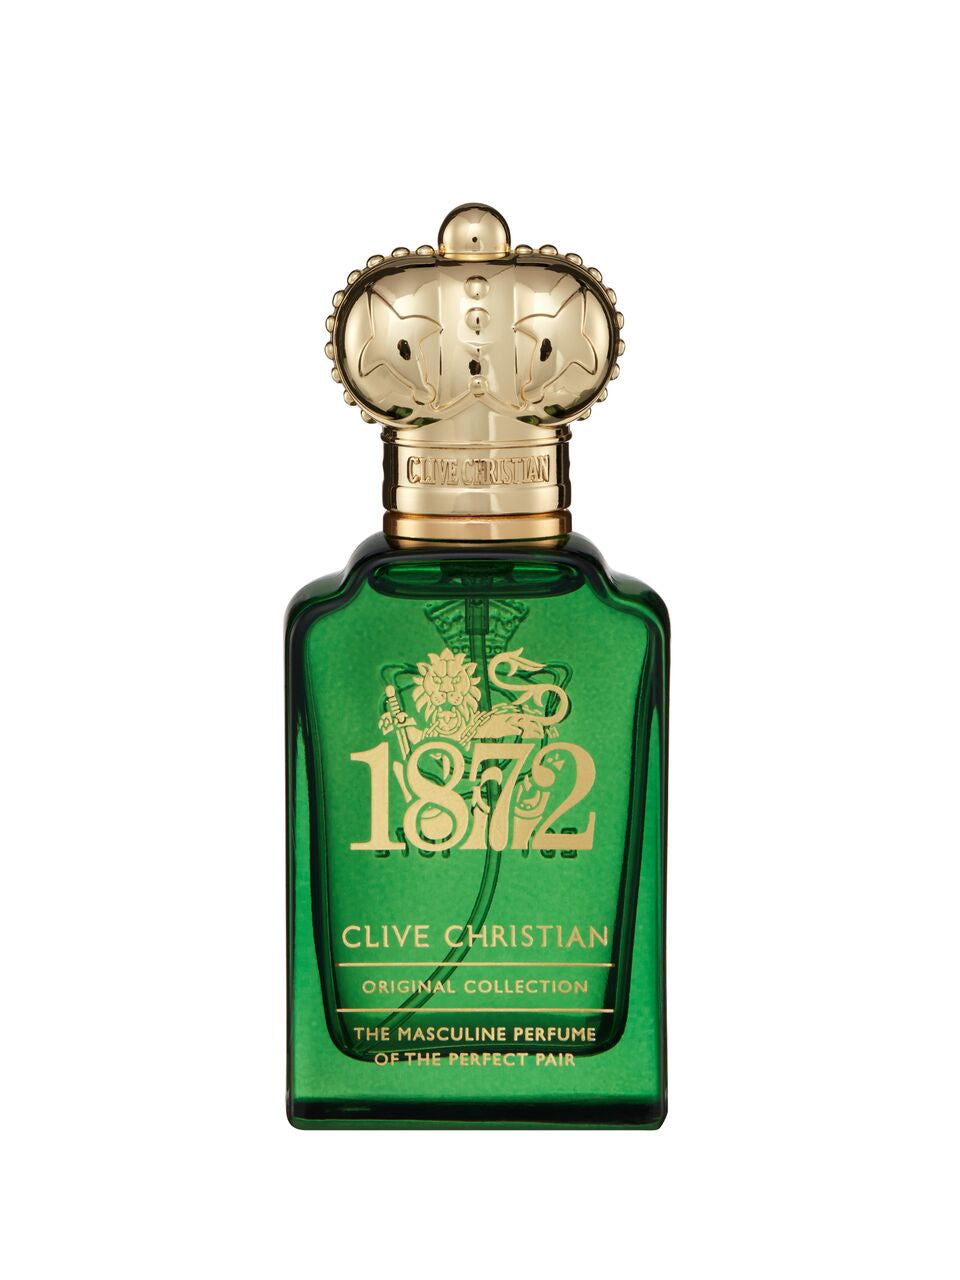 Clive Christian 1872 Masculine 50ml